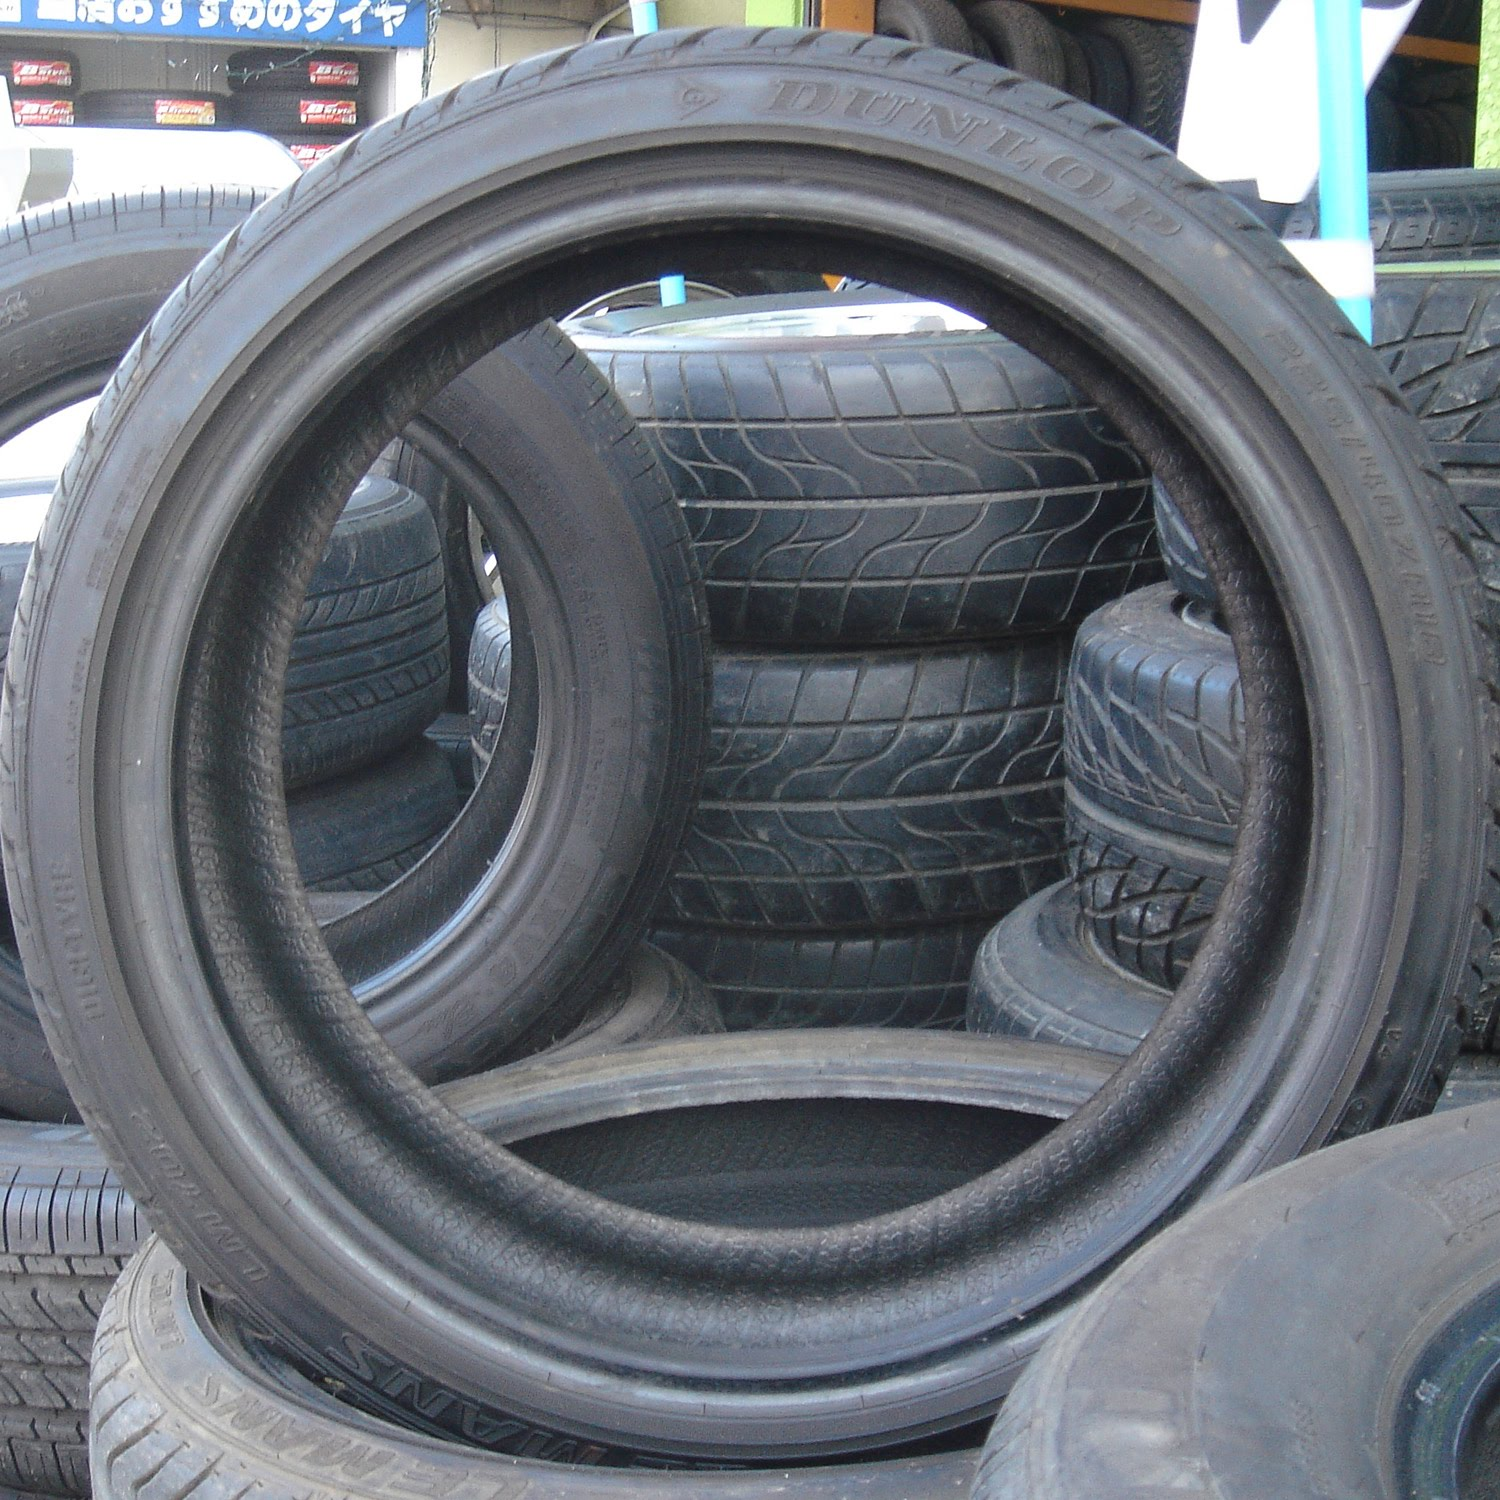 Manage Used Tires by Starting Tire Recycling Business